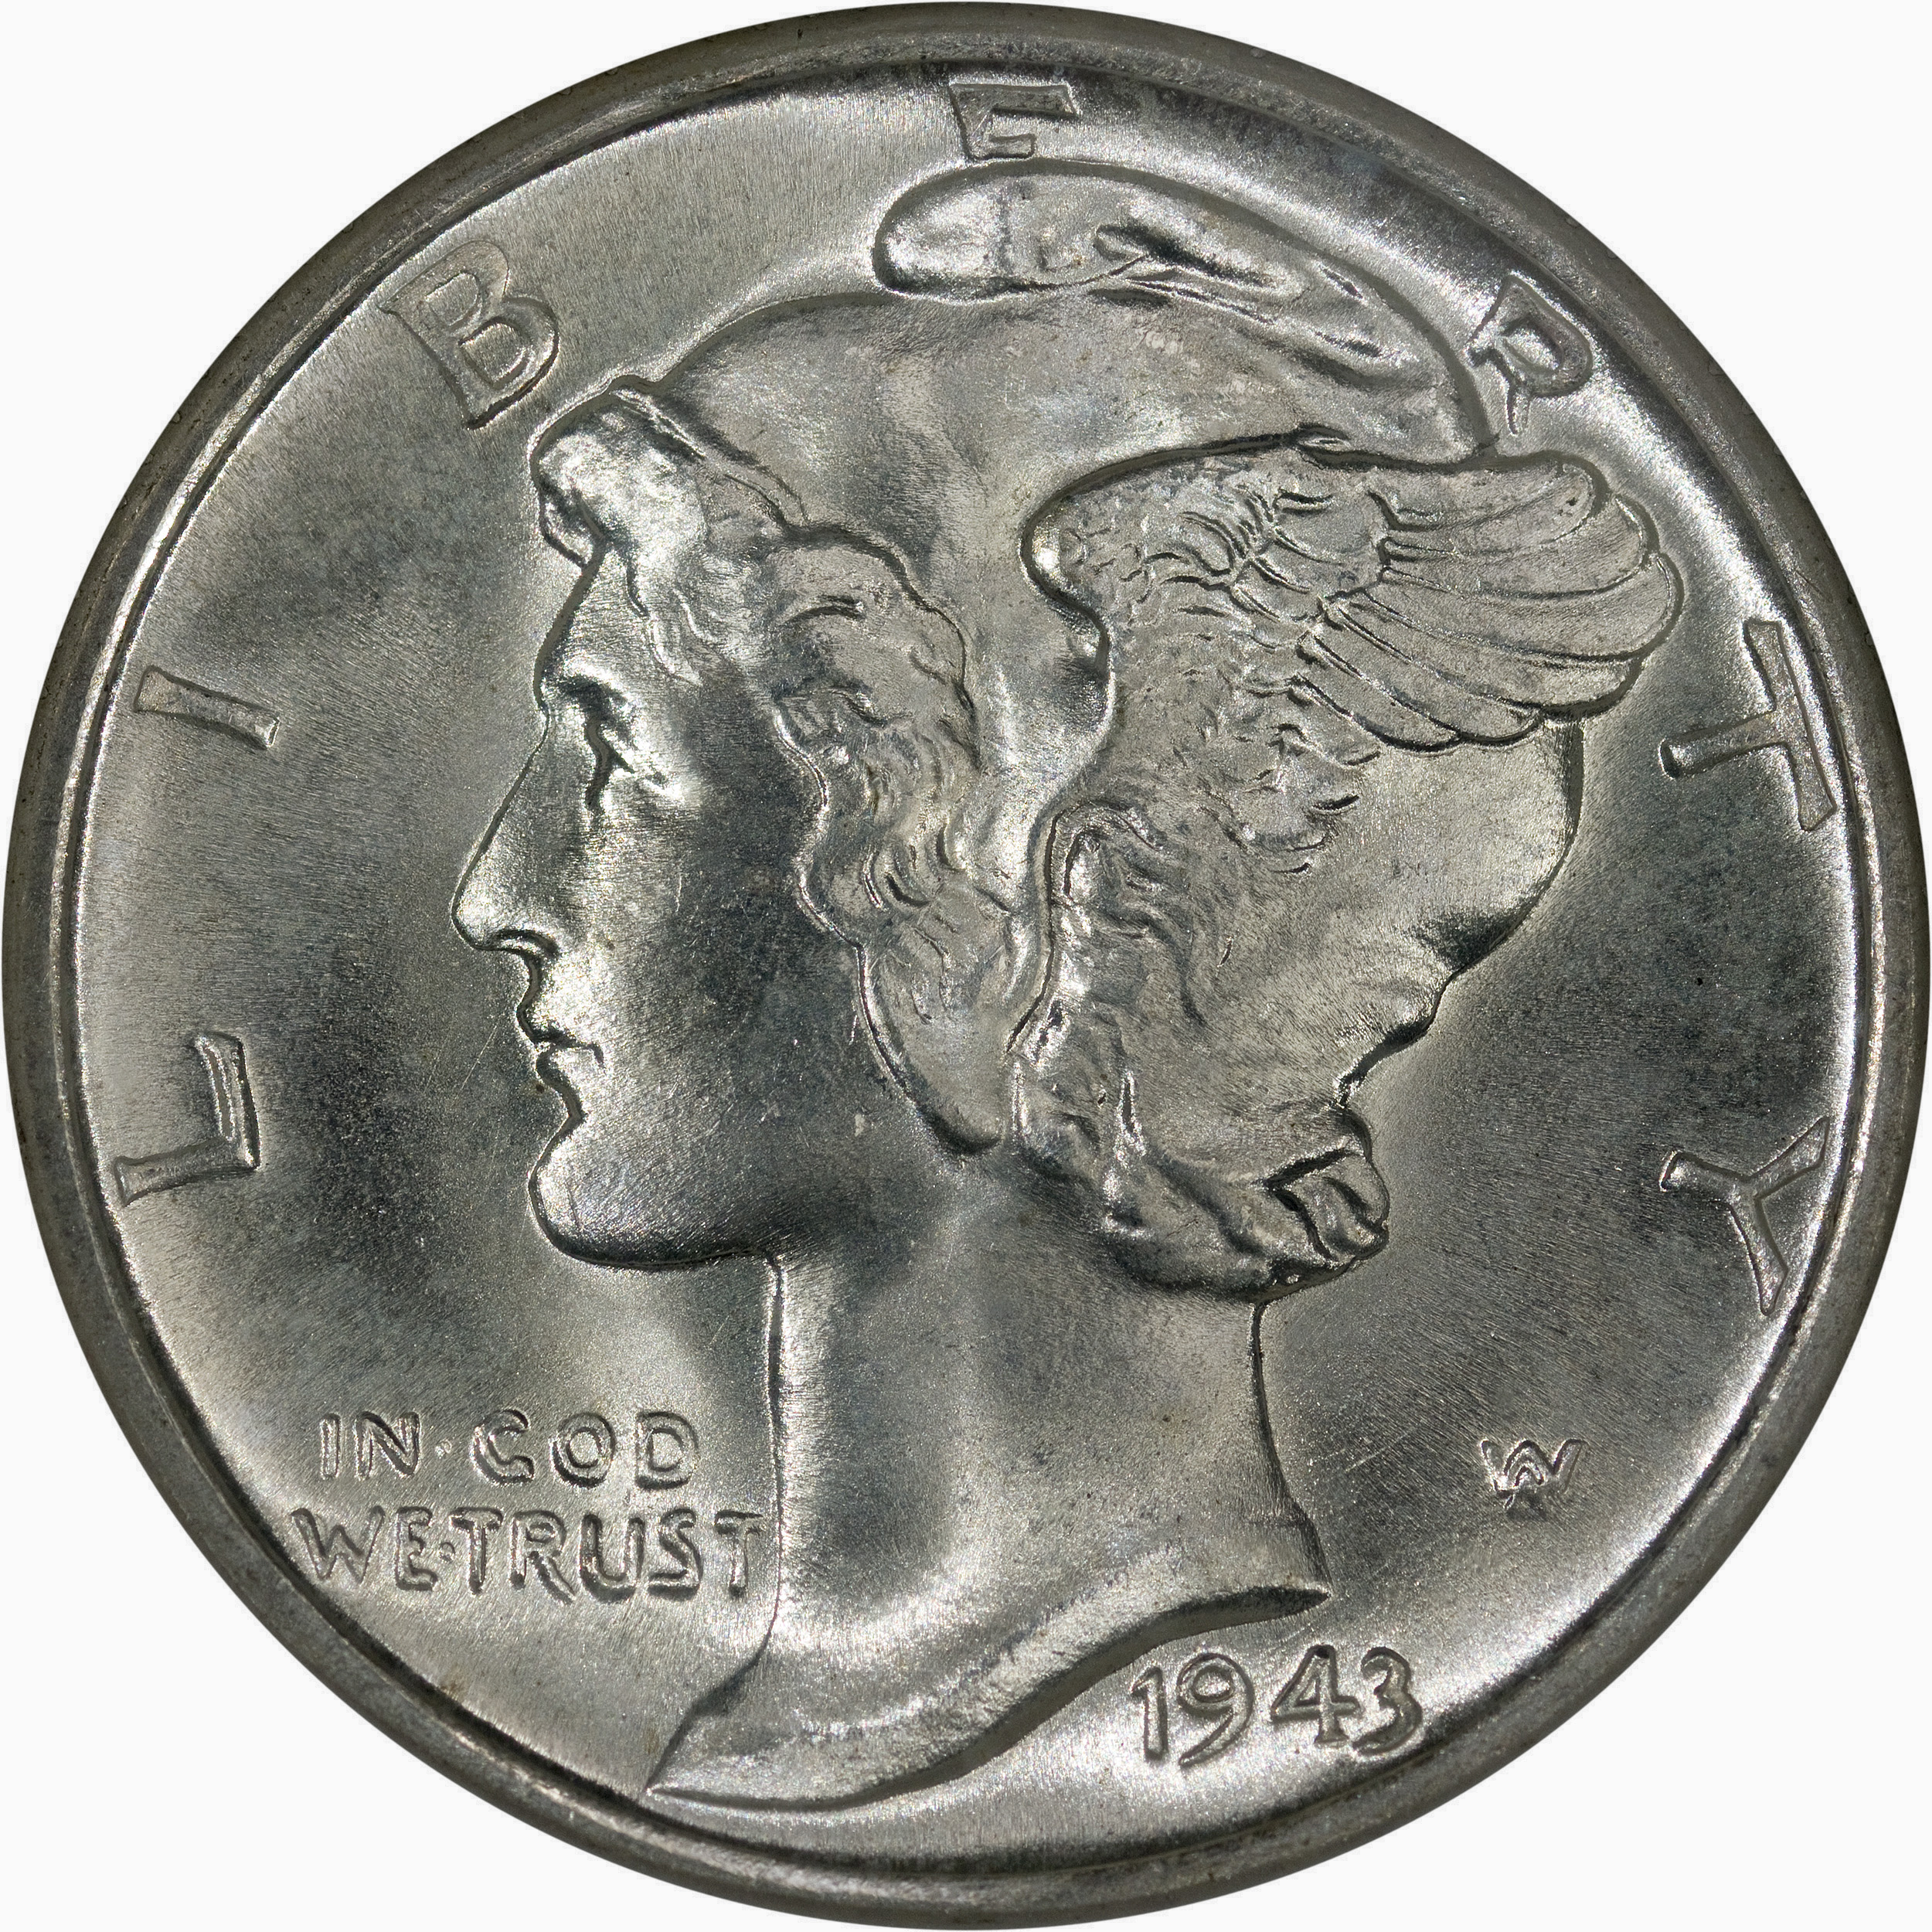 A Liberty Dime, with a woman wearing a winged phrygian cap.